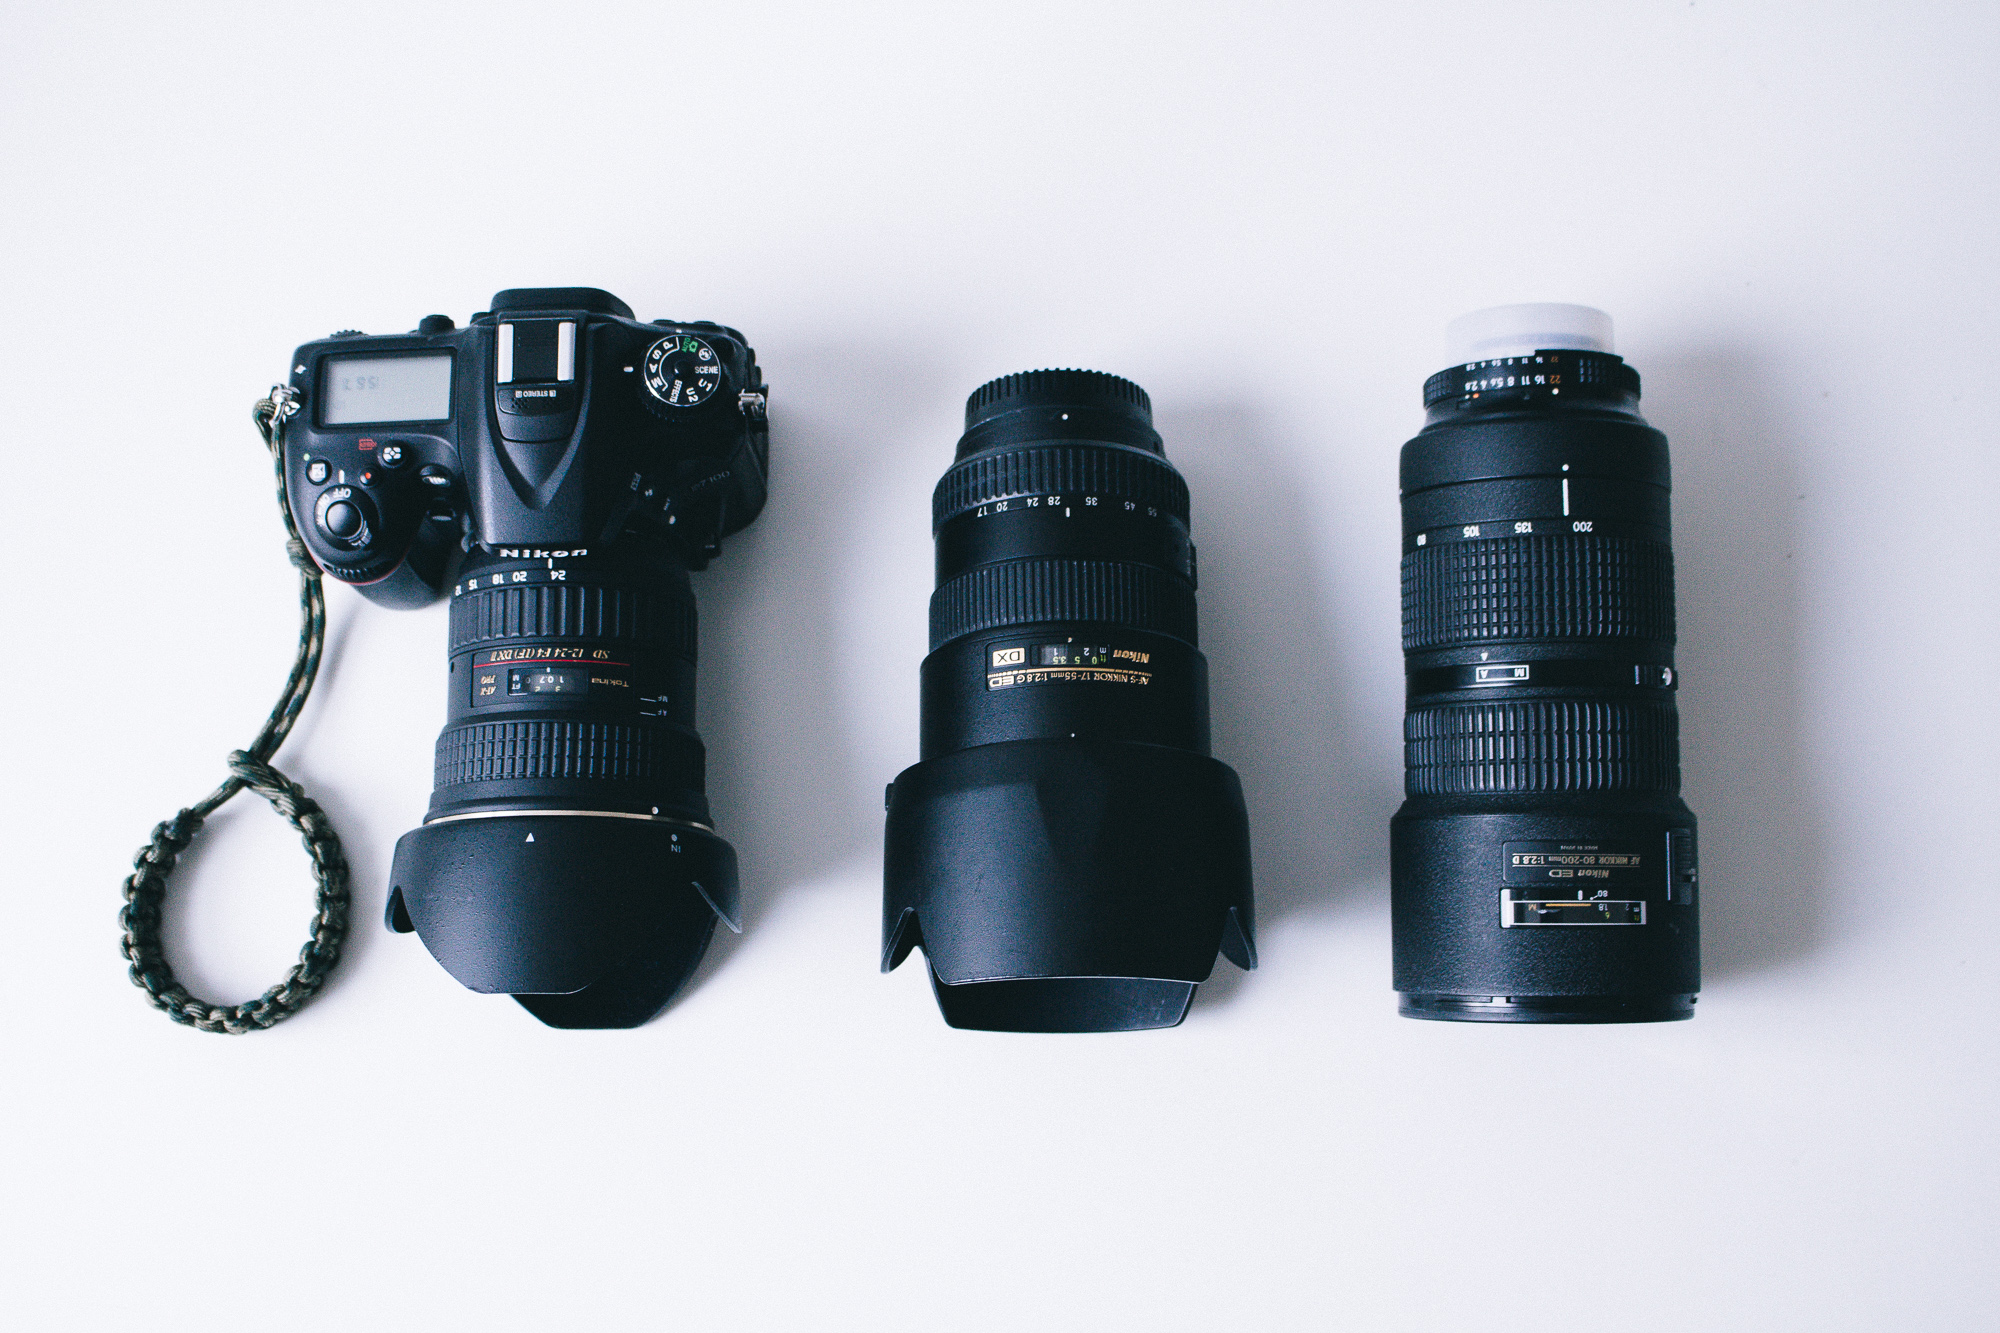 Nikon-D7100-and-lenses